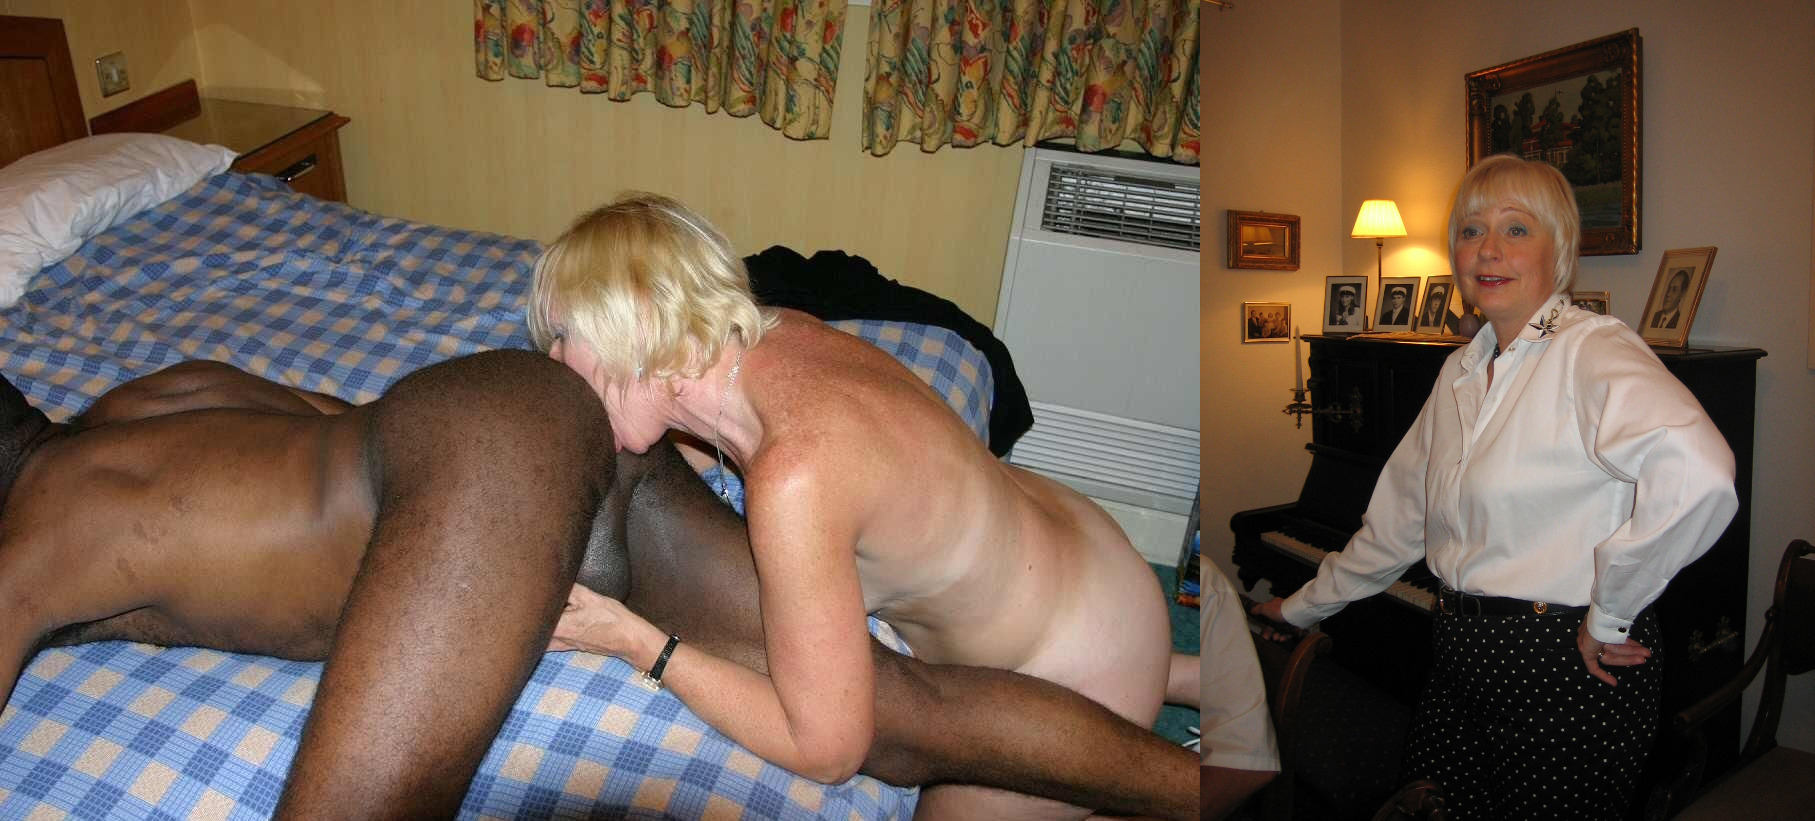 Homemade Black Ass Porn